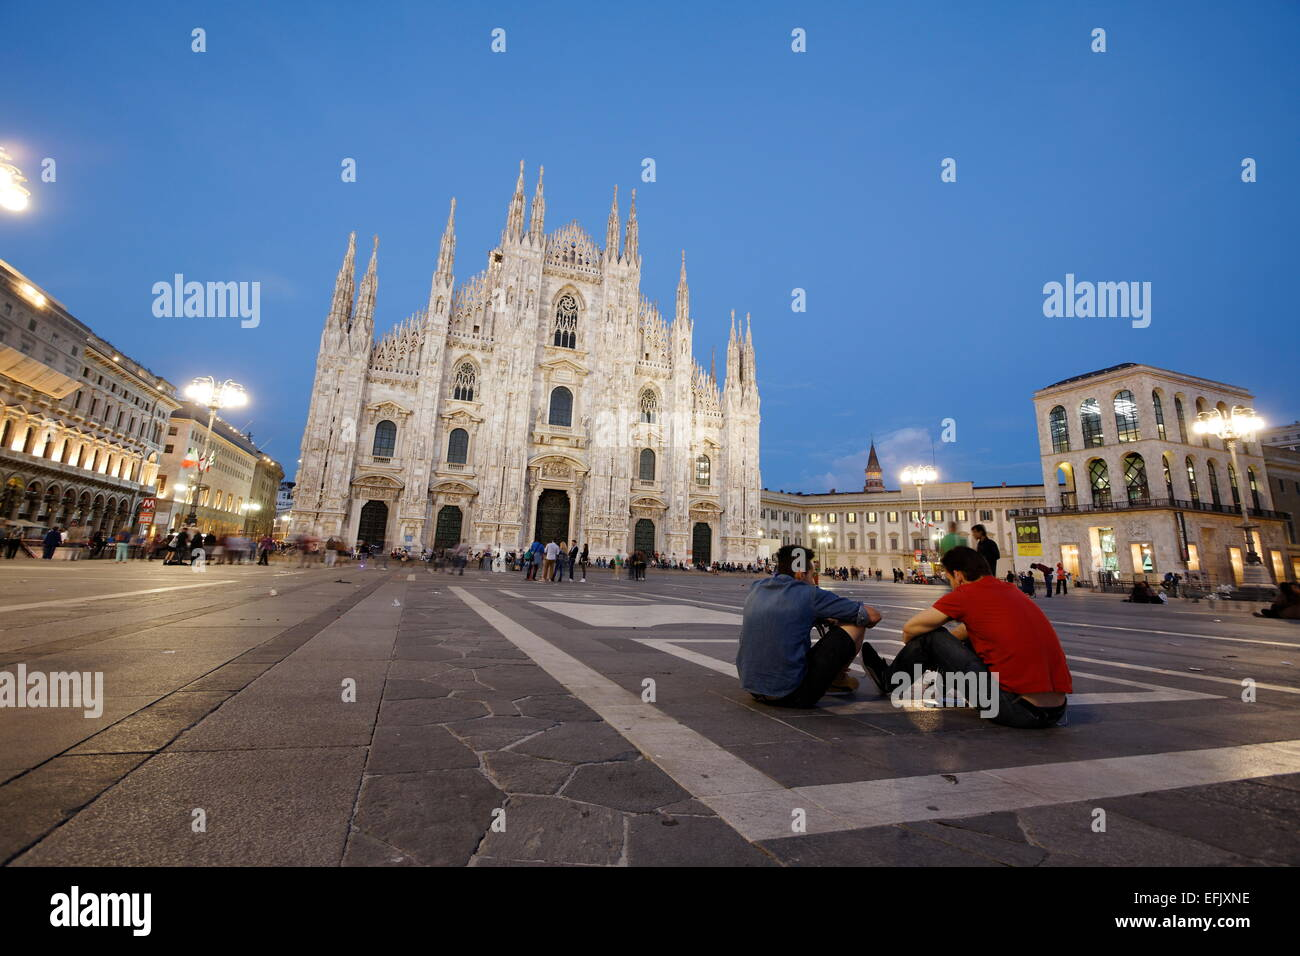 Piazza del Duomo with Milan Cathedral and Palazzo dell Arengario in the evening, Milan, Lombardy, Italy - Stock Image